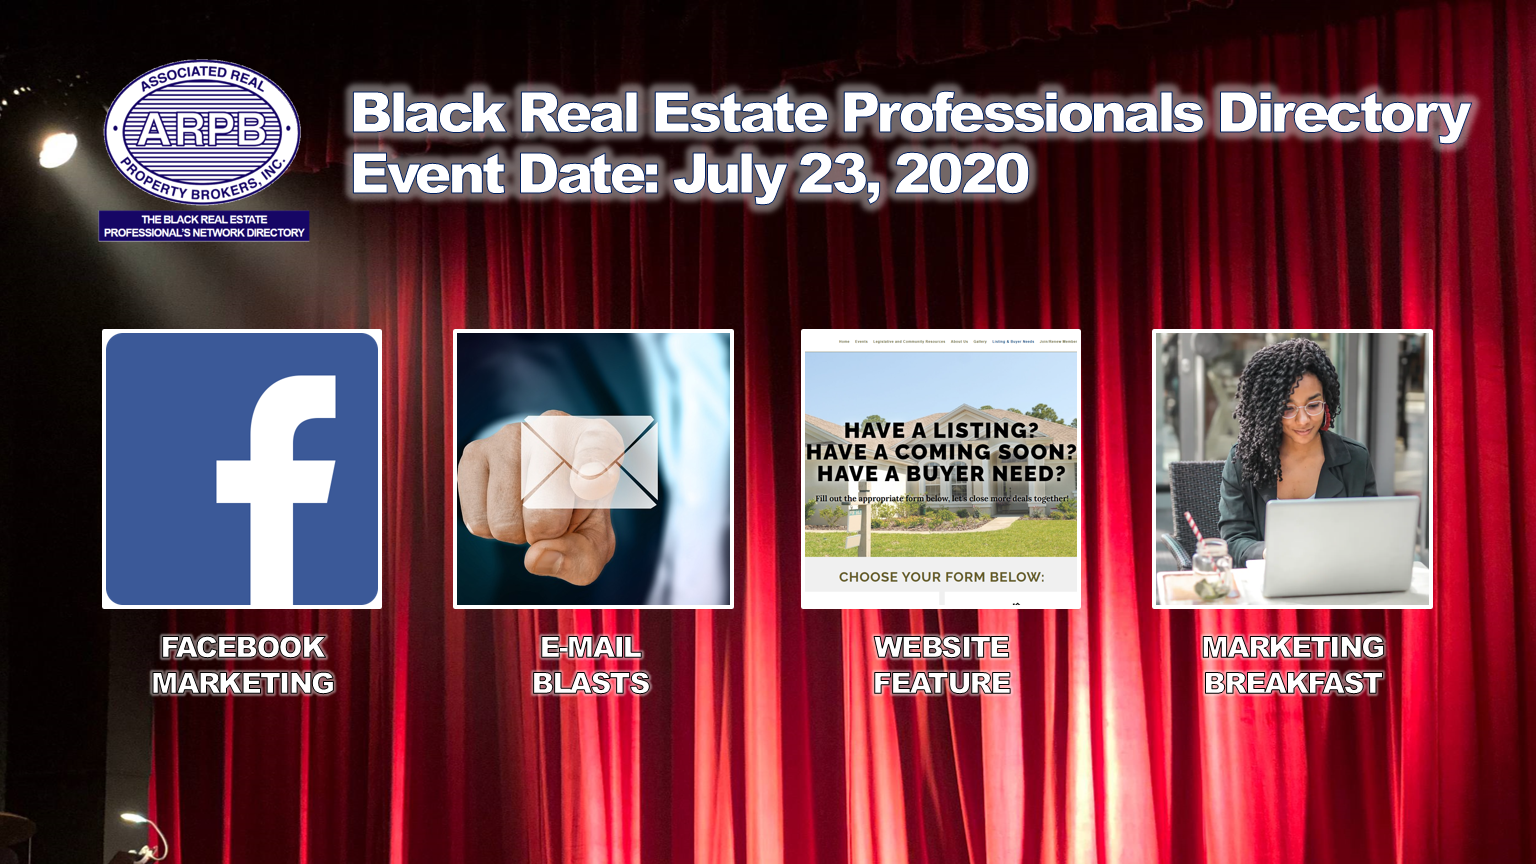 black-real-estate-professionals-directory-event-date